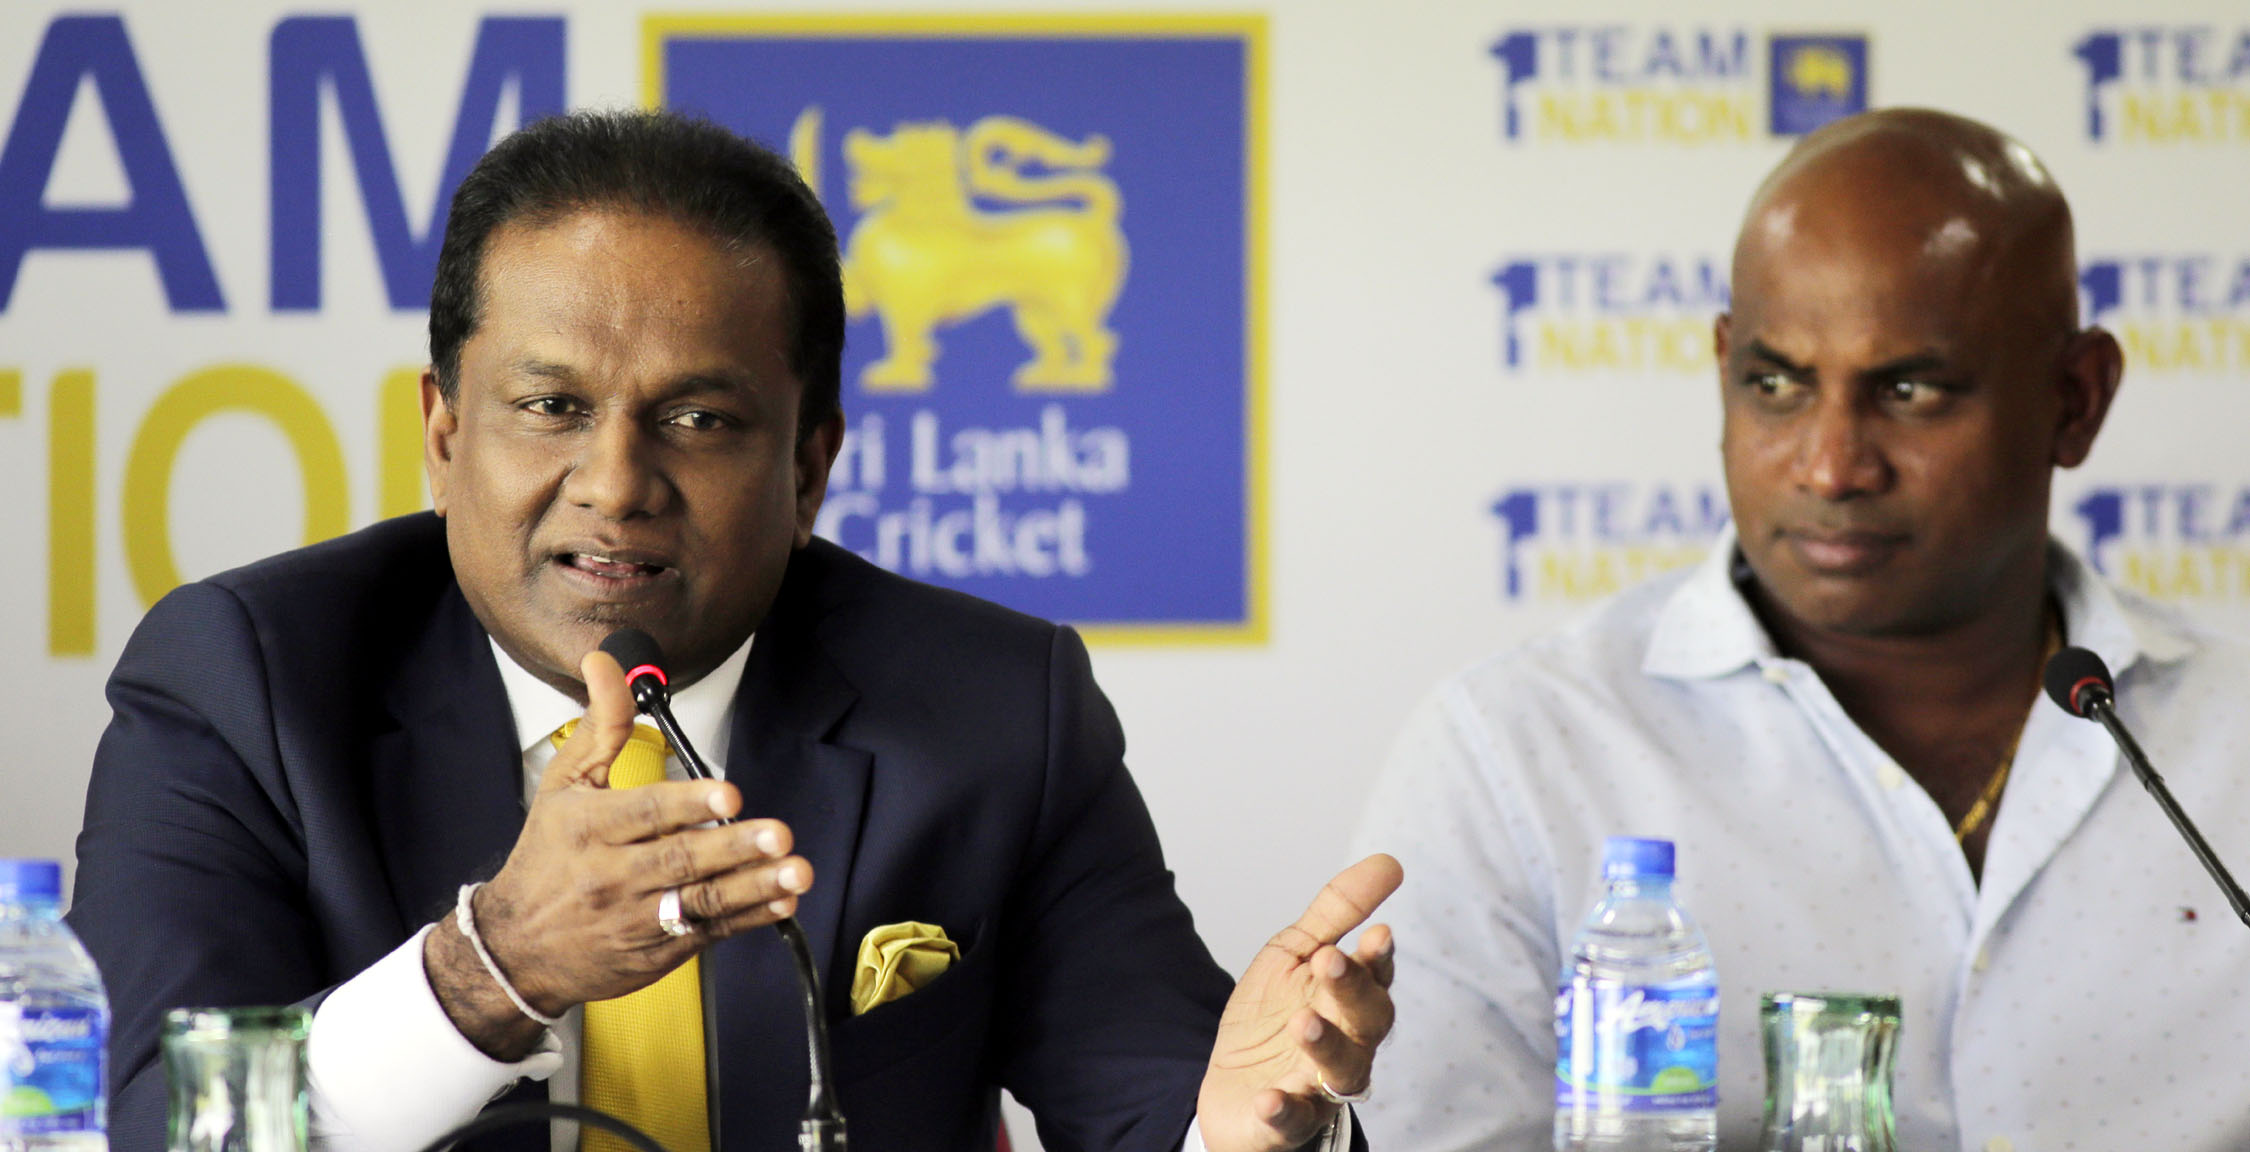 Sri Lankan Cricket President Thilanga Sumathipala (left) speaks as Chief Selector Sanath Jayasuriya watches during a media briefing ahead of the One-Day International cricket match series against India in Colombo, Sri Lanka on Wednesday.